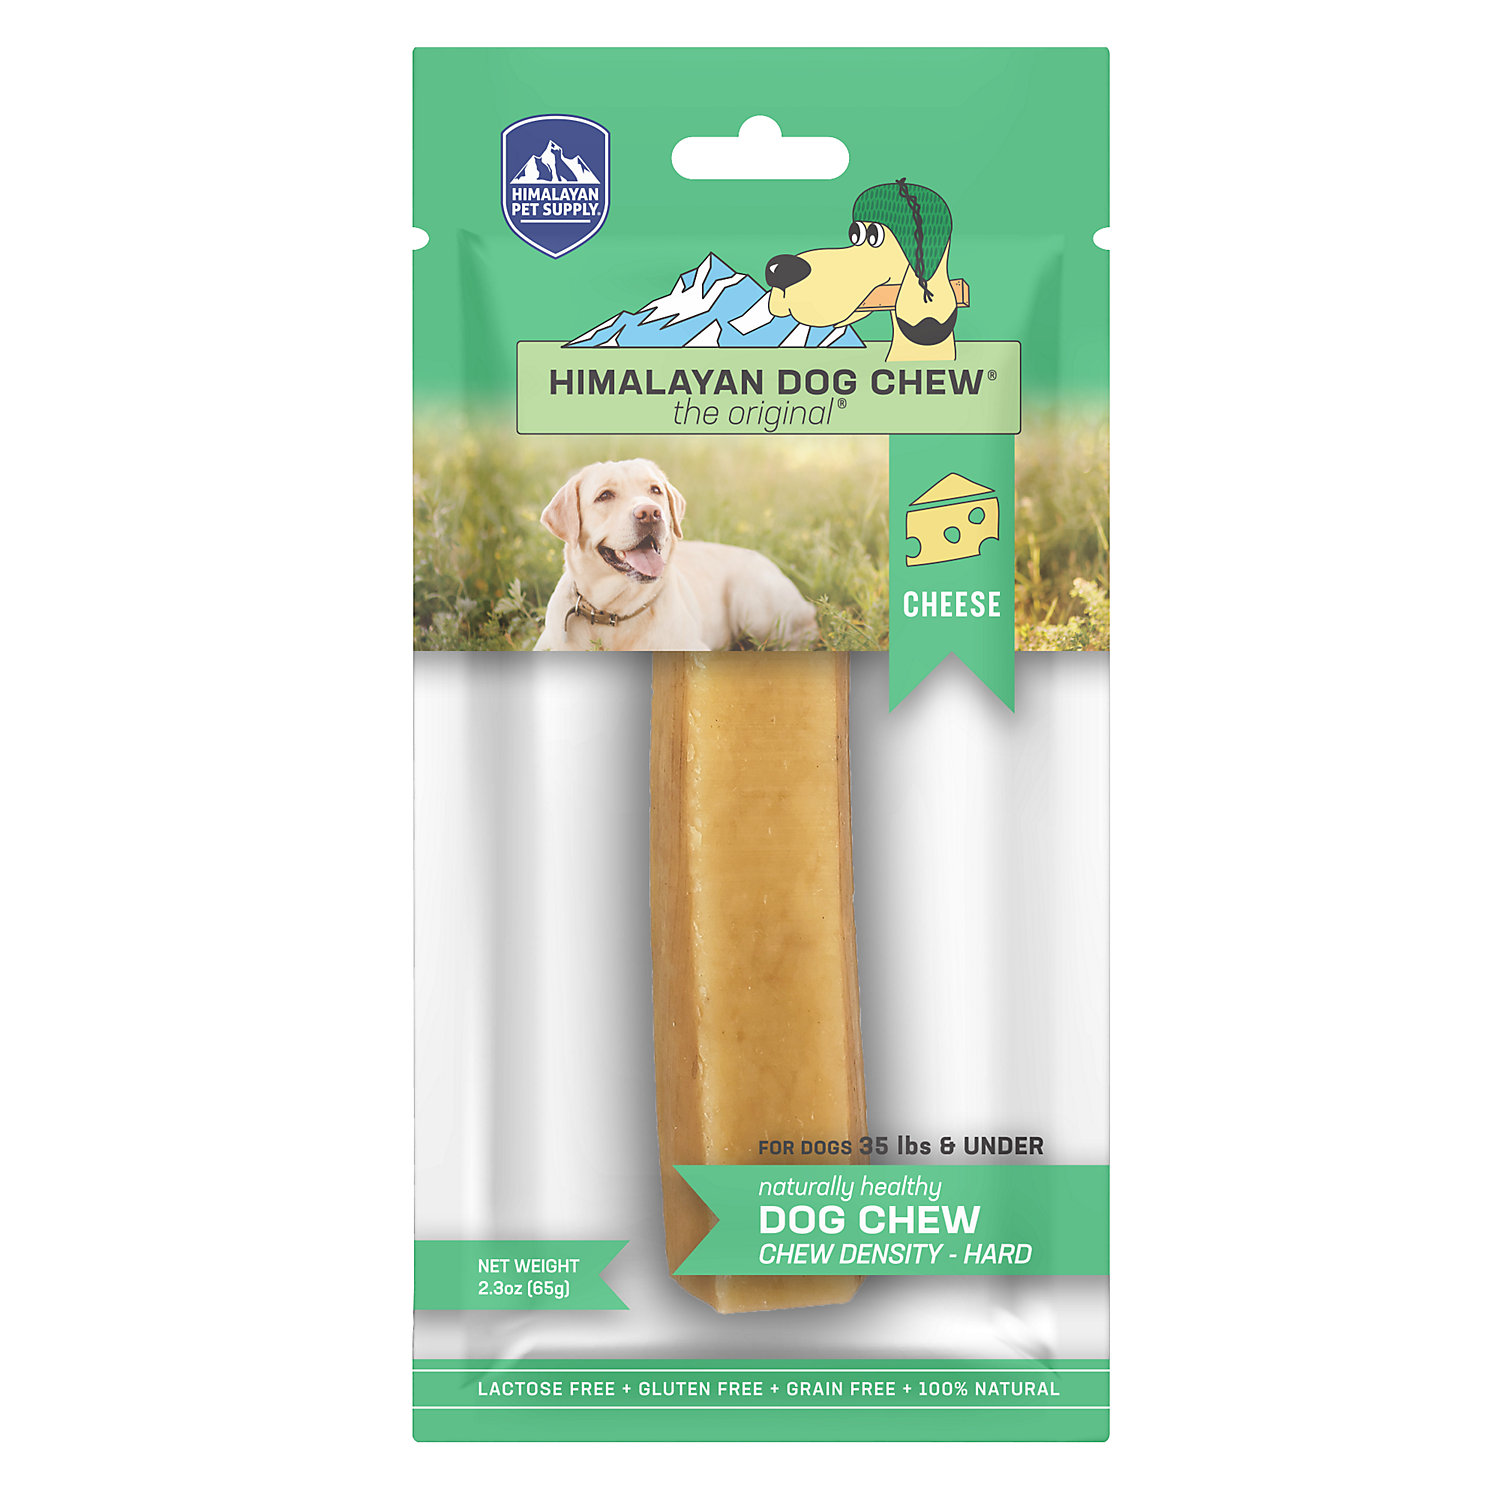 Himalayan Medium Dog Chew, For Dogs 15-35 Lbs.